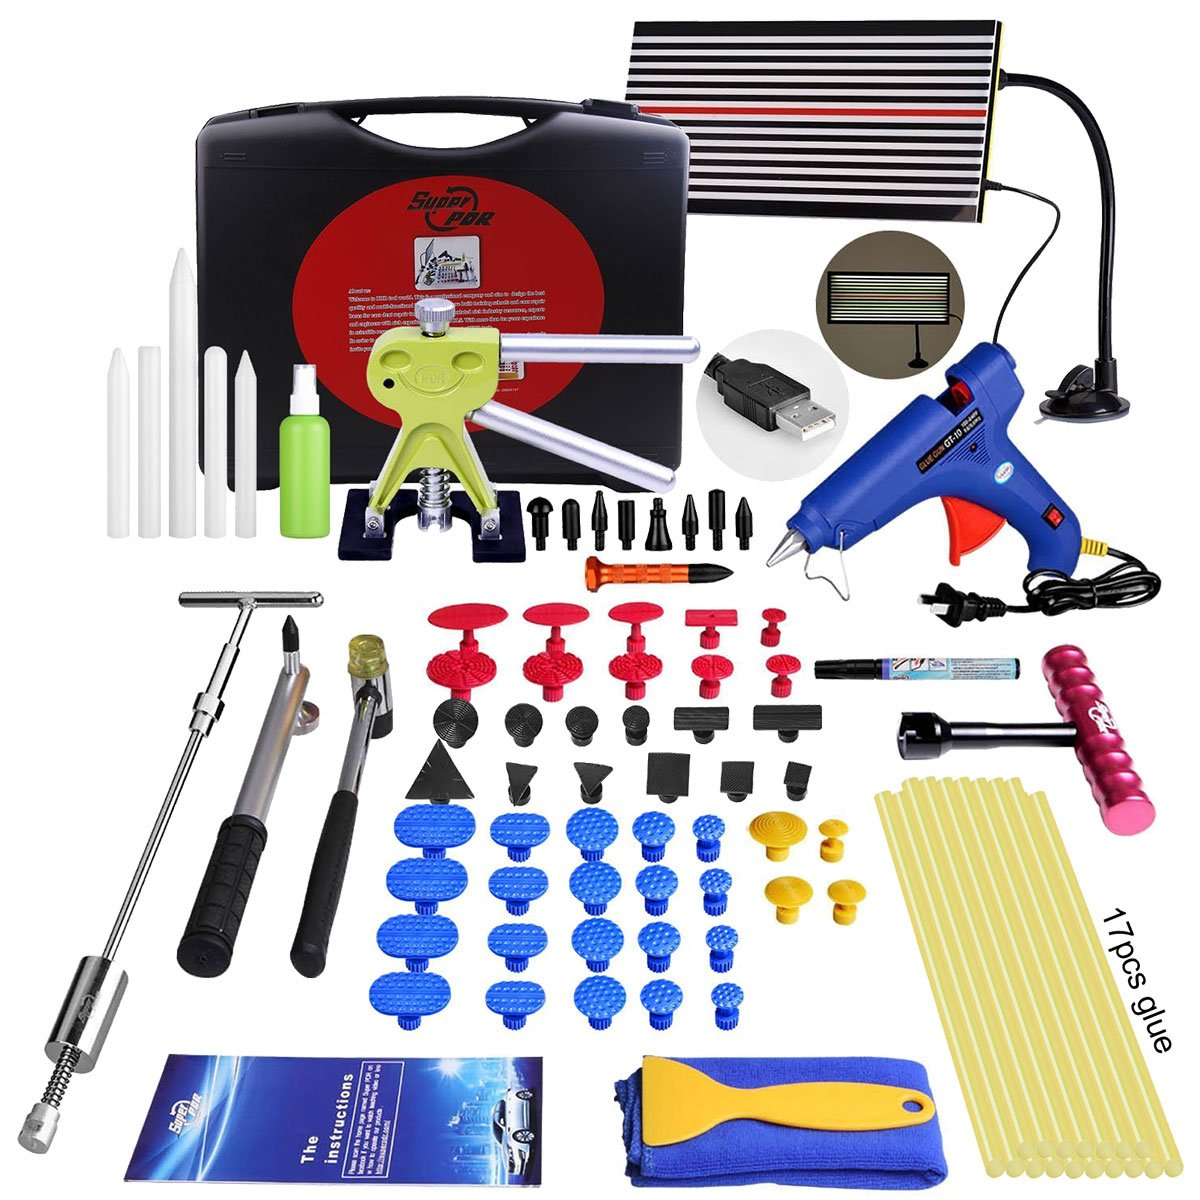 Super PDR DIY Car Auto Body Dent Removal Repair Tools Kits Car Scratch Remover Pen Dent Board Slide Hammer Working Gloves Glue Puller Sets Black Tool Box by Super PDR (Image #1)